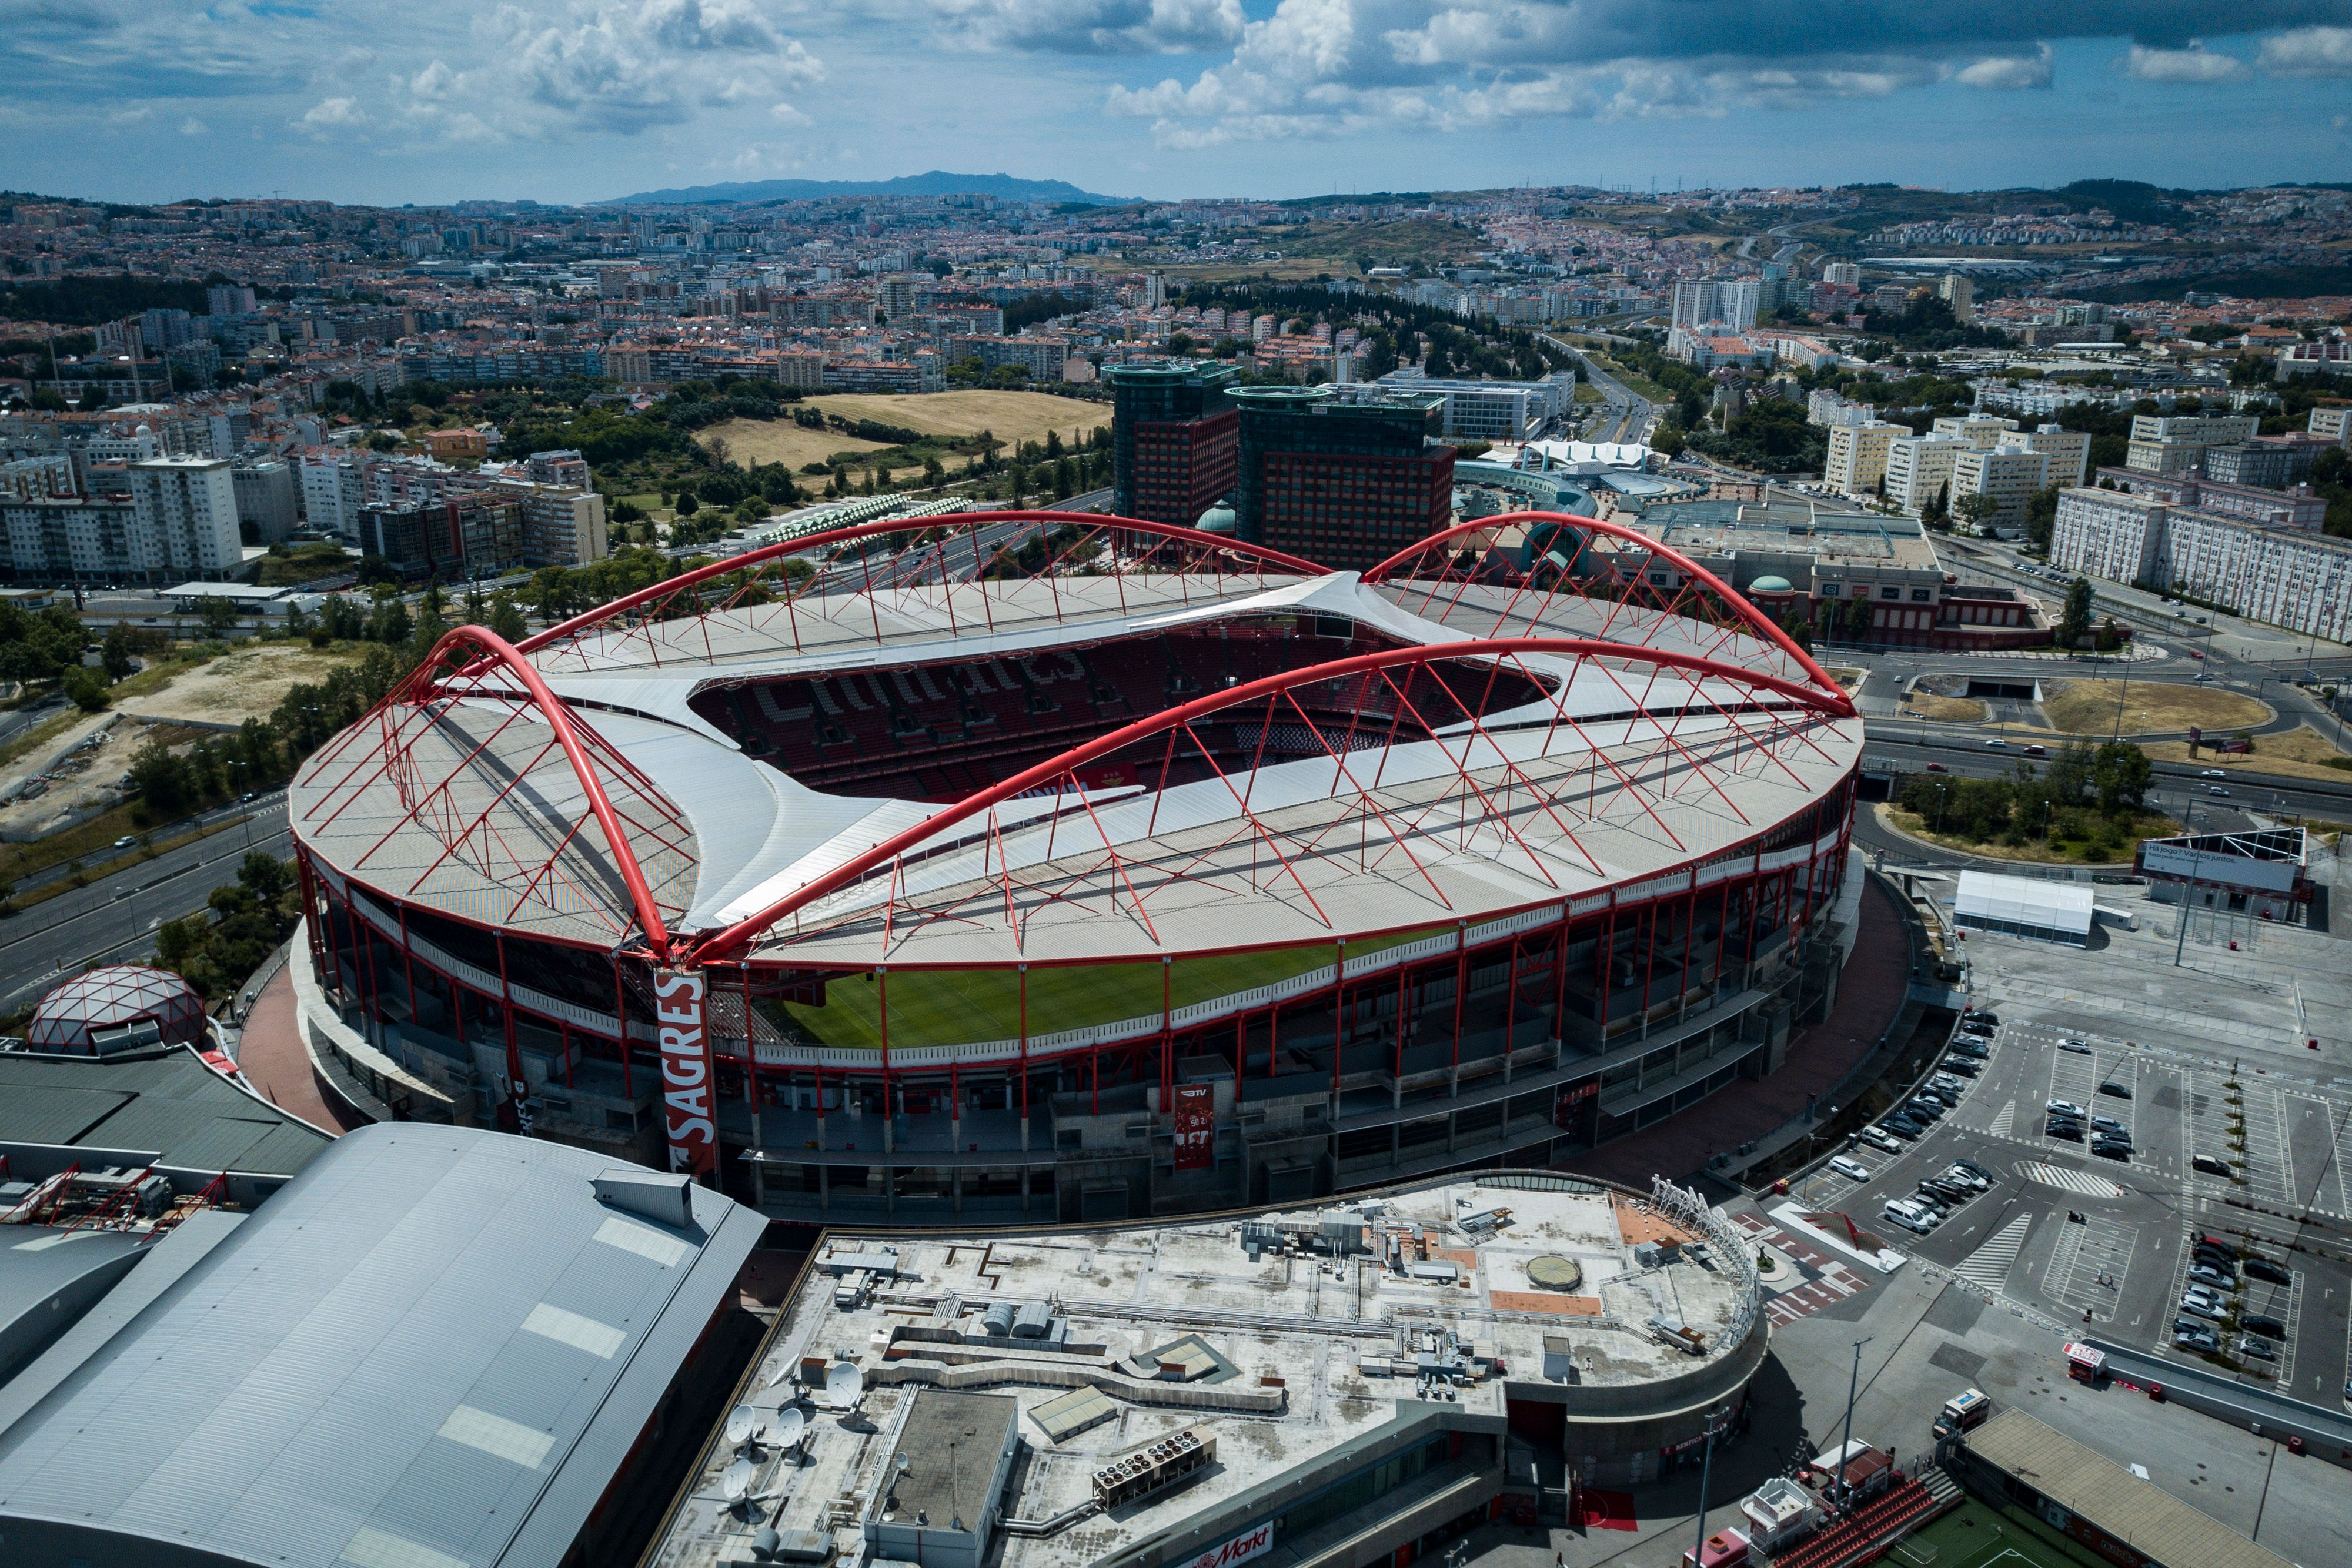 The Luz Stadium stands in Lisbon, Portugal, on June 17.